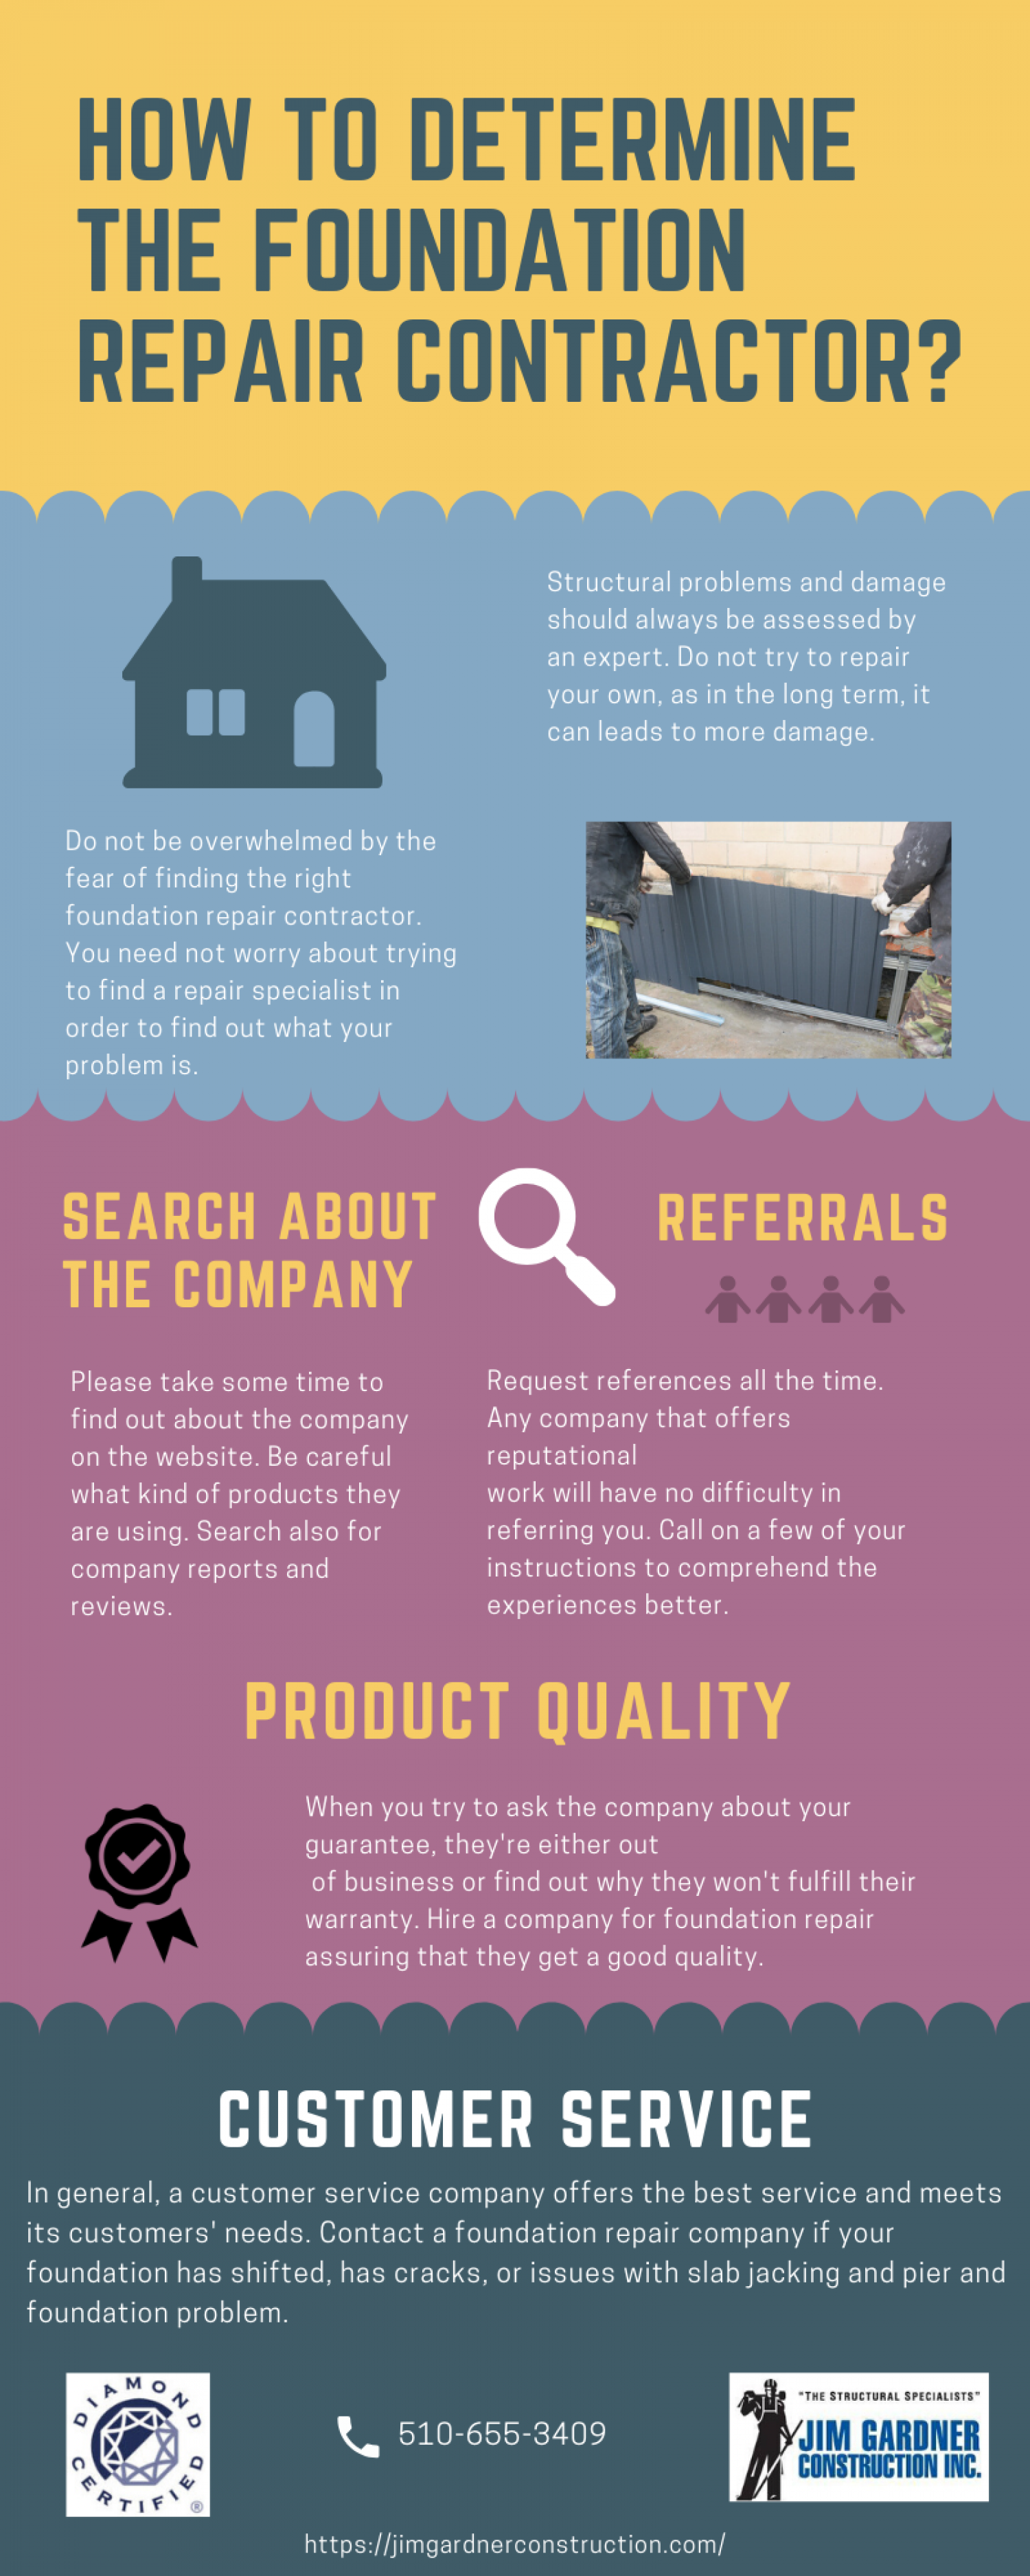 How to Determine the Foundation Repair Contractor? Infographic